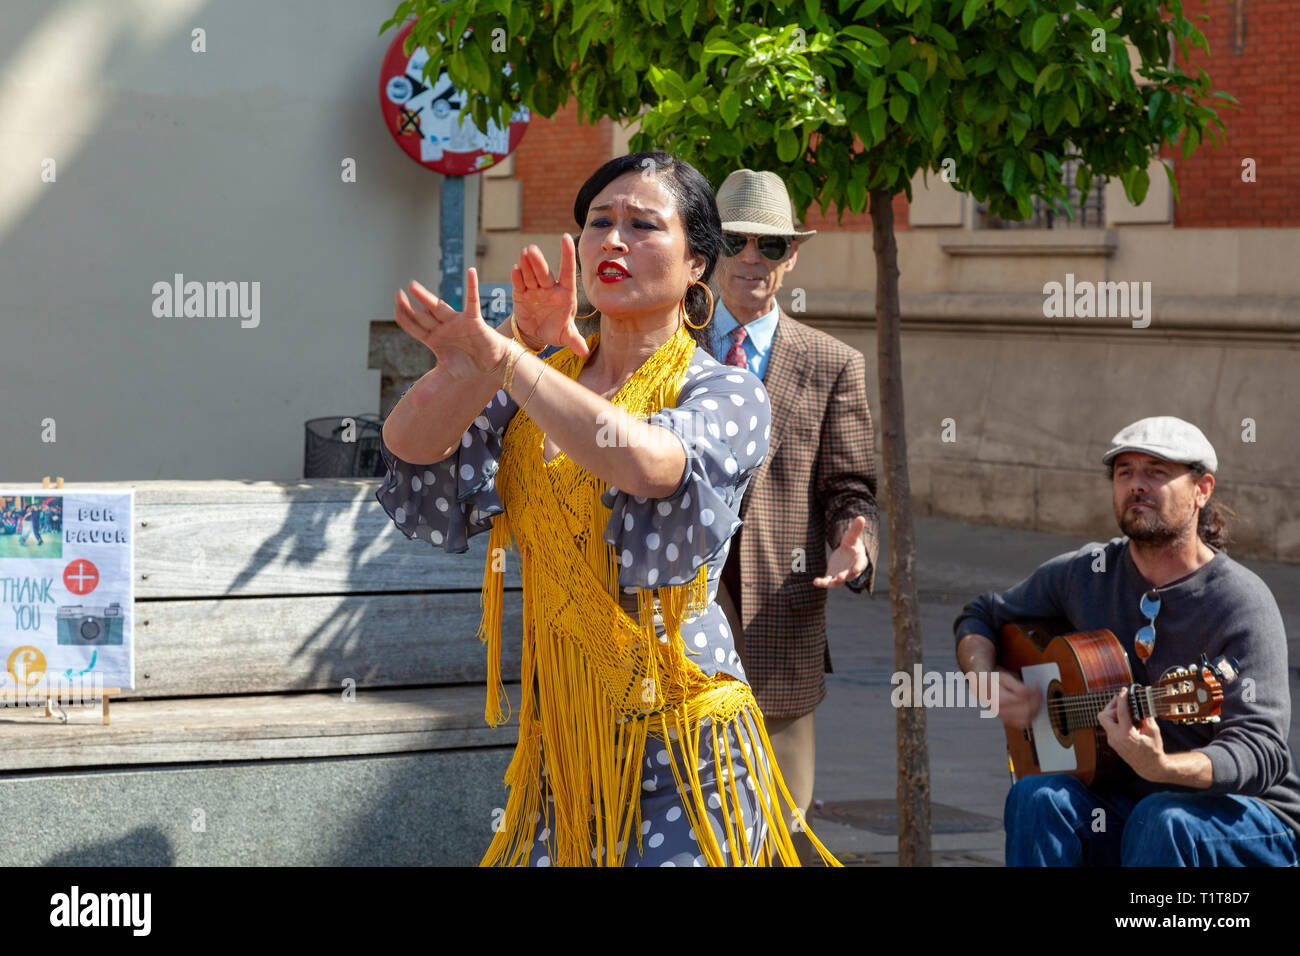 Flamenco dancer and singer in Seville, Spain - Stock Image